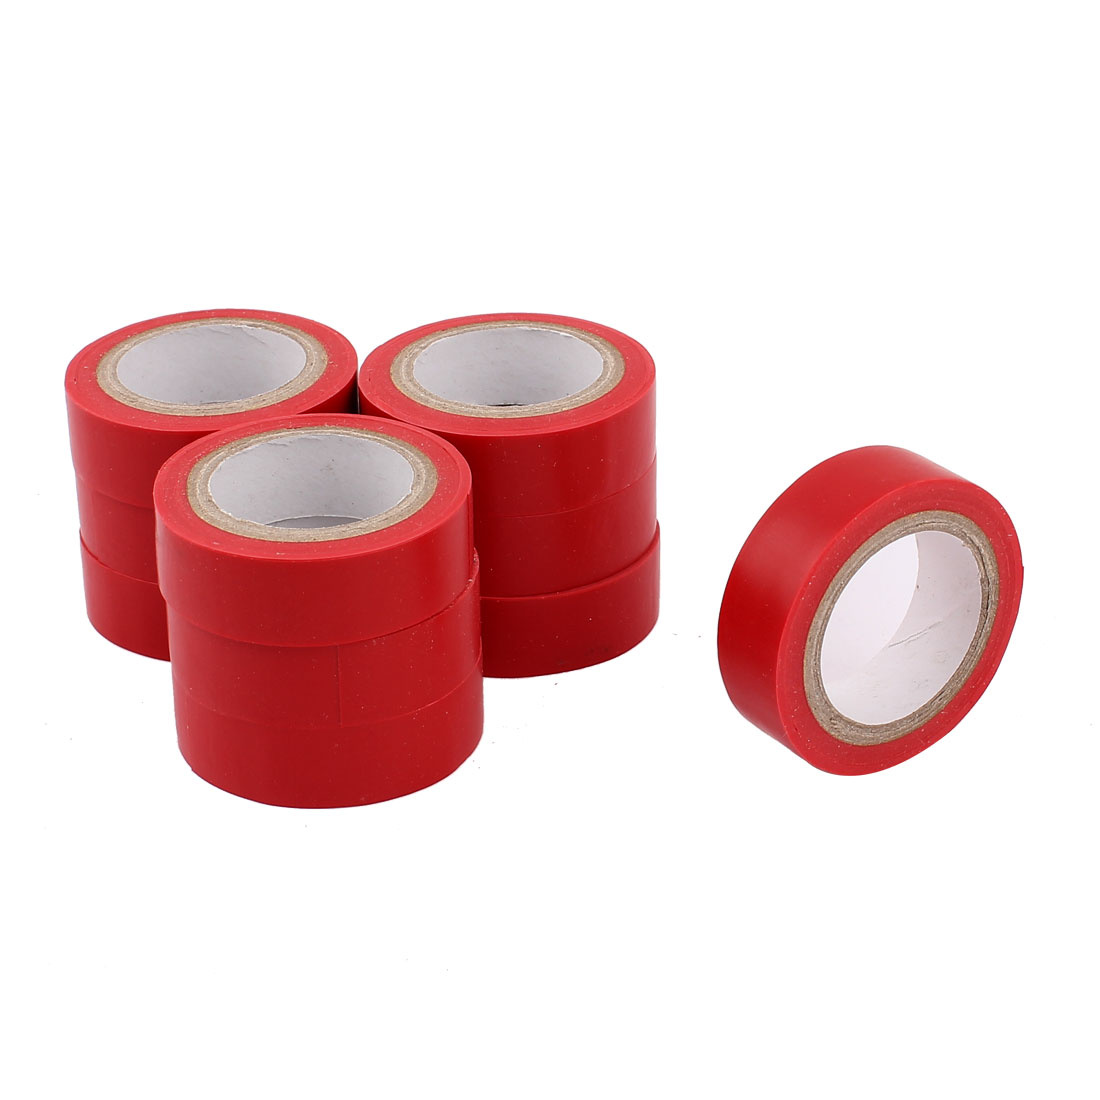 33Ft Long 15mm Wide PVC Self-adhesive Electrical Insulation Tape Red 10 Rolls